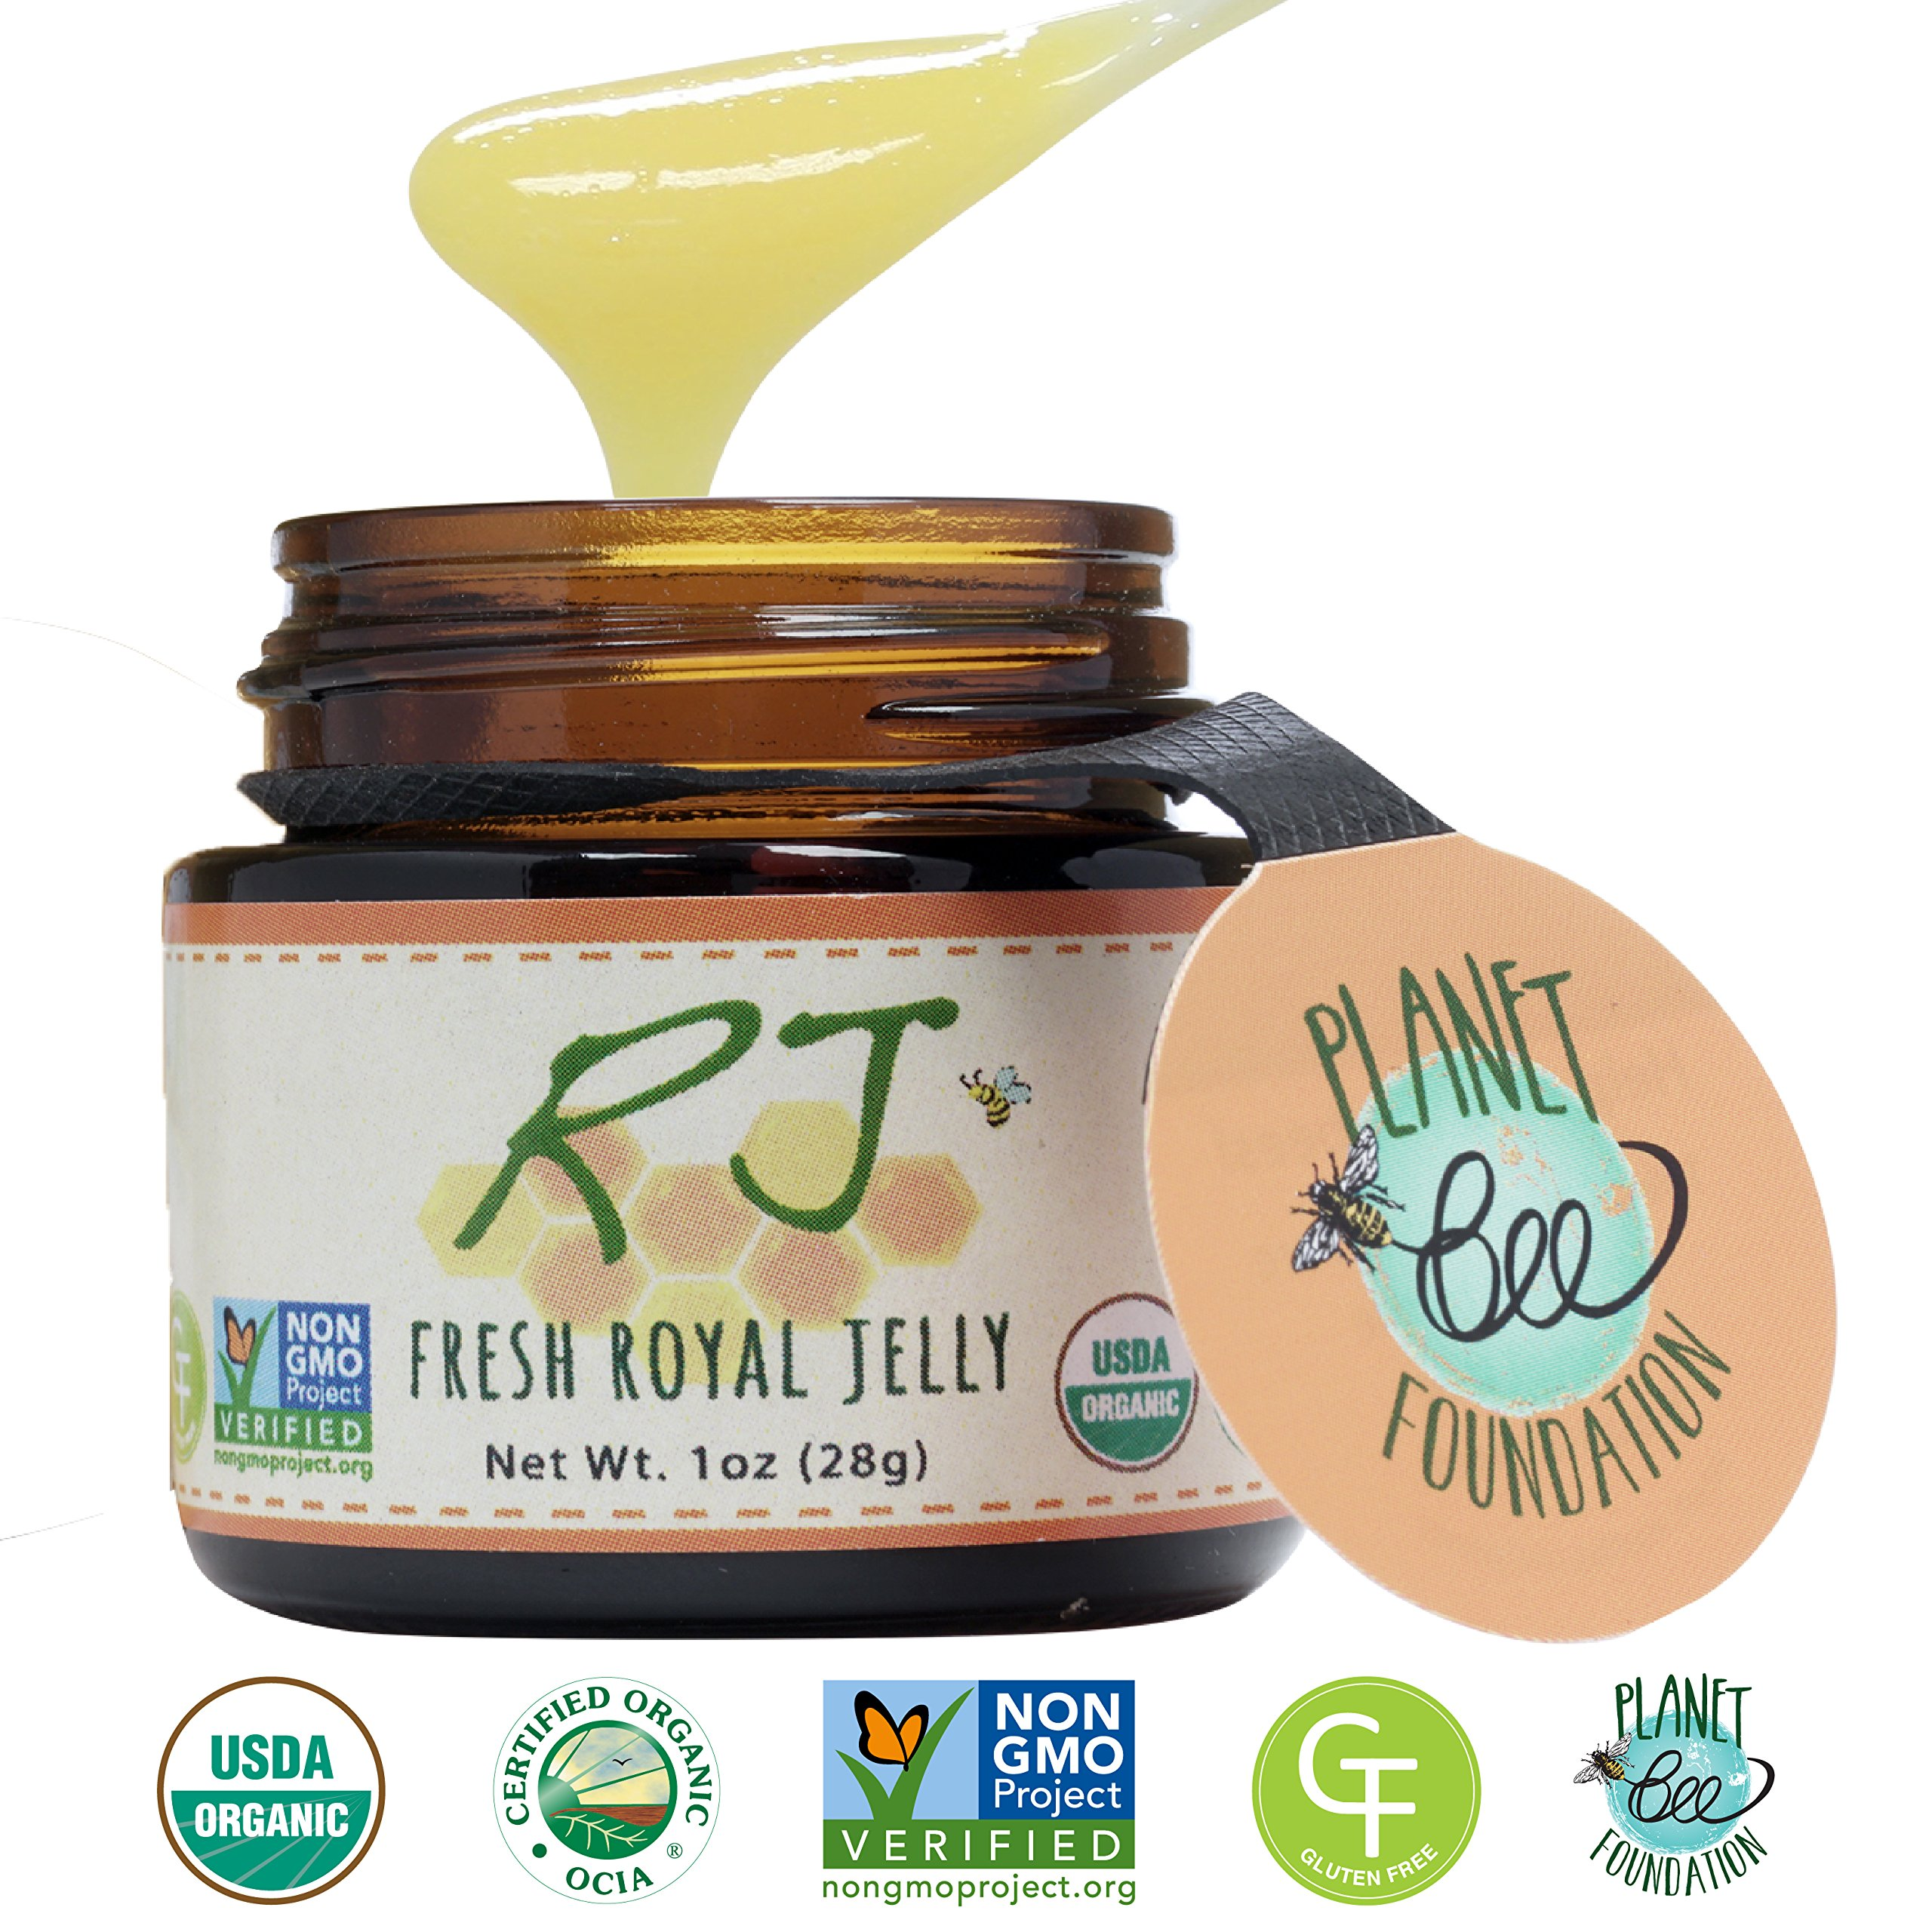 GREENBOW Organic Fresh Royal Jelly - 100% USDA Certified Organic, Pure, Gluten Free, Non-GMO Royal Jelly - One of the Most Nutrition Packed Diet Supplements - Highest Quality Royal Jelly - (28g)